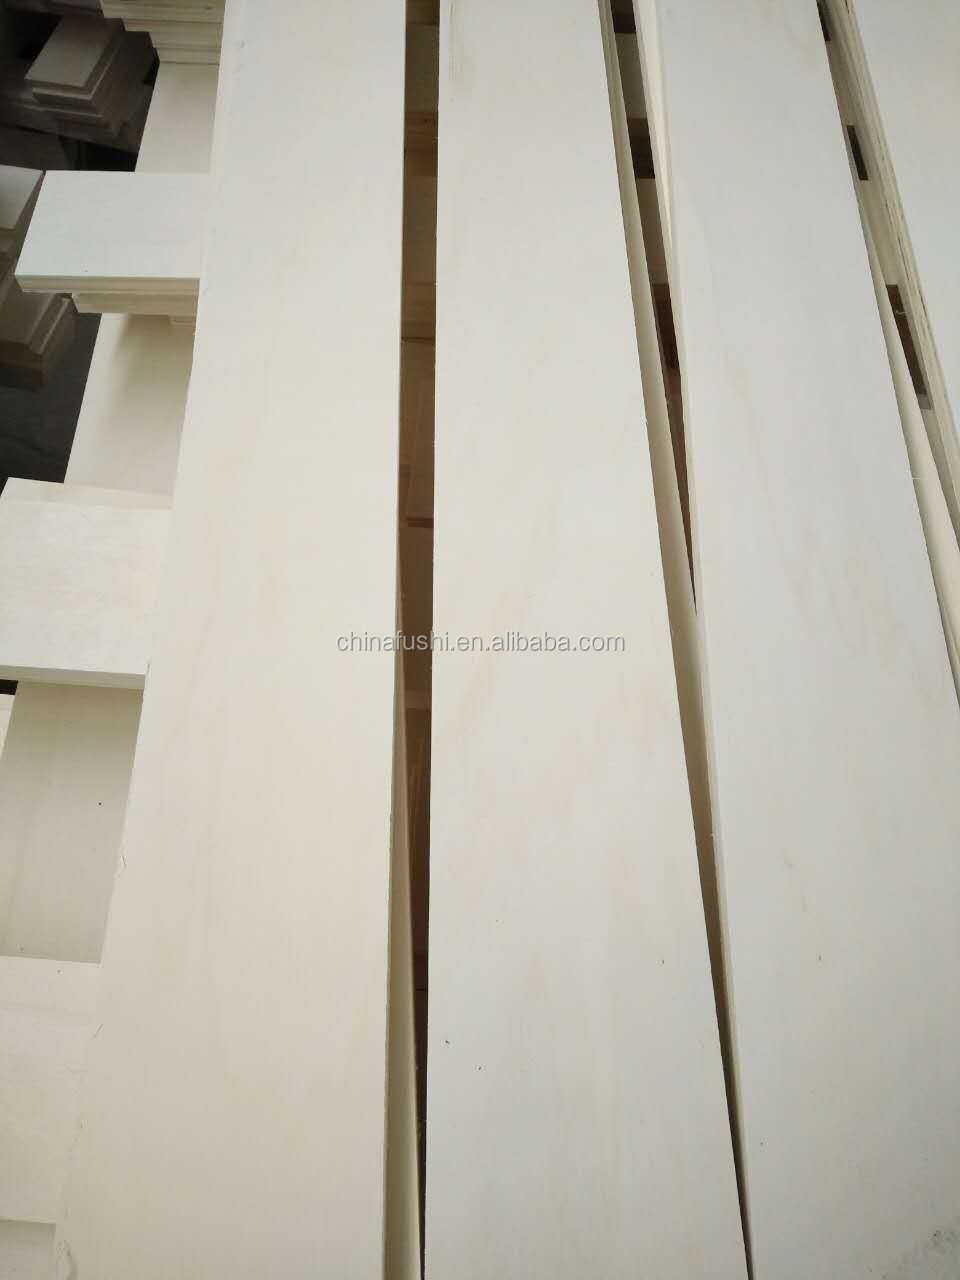 Poplar core Indoor Usage LVL slat furniture parts curved bed slat